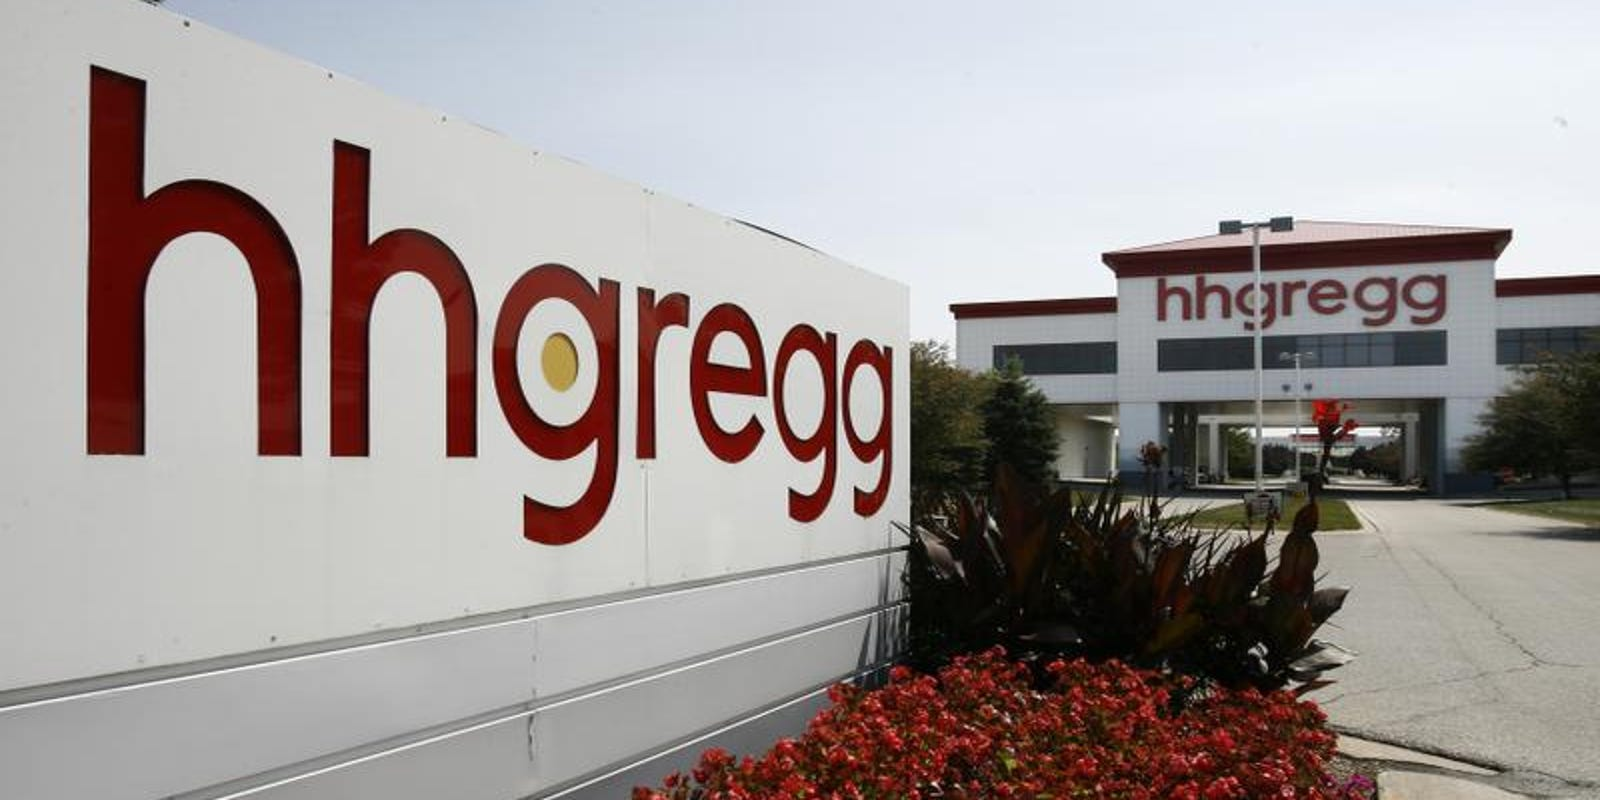 Shares Of Hh Gregg Down After 62 Percent Drop In Sales